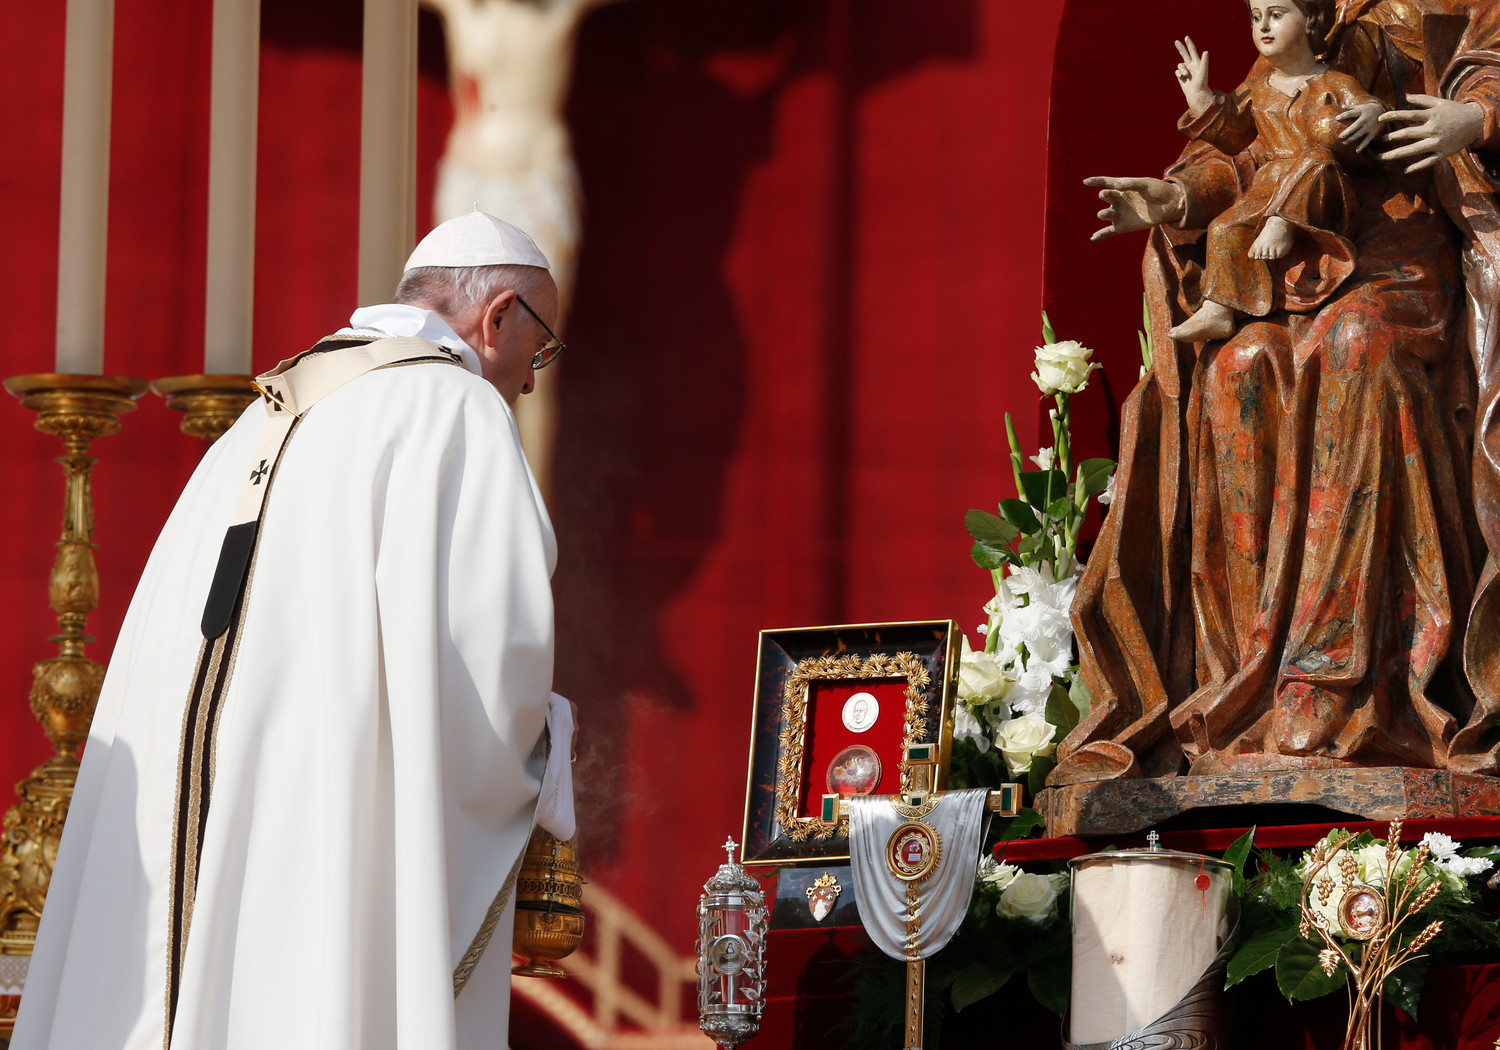 Pope Francis uses incense to venerate relics as he celebrates the canonization Mass for seven new saints in St. Peter's Square at the Vatican Oct. 14. Among the new saints are St. Paul VI and St. Oscar Romero.